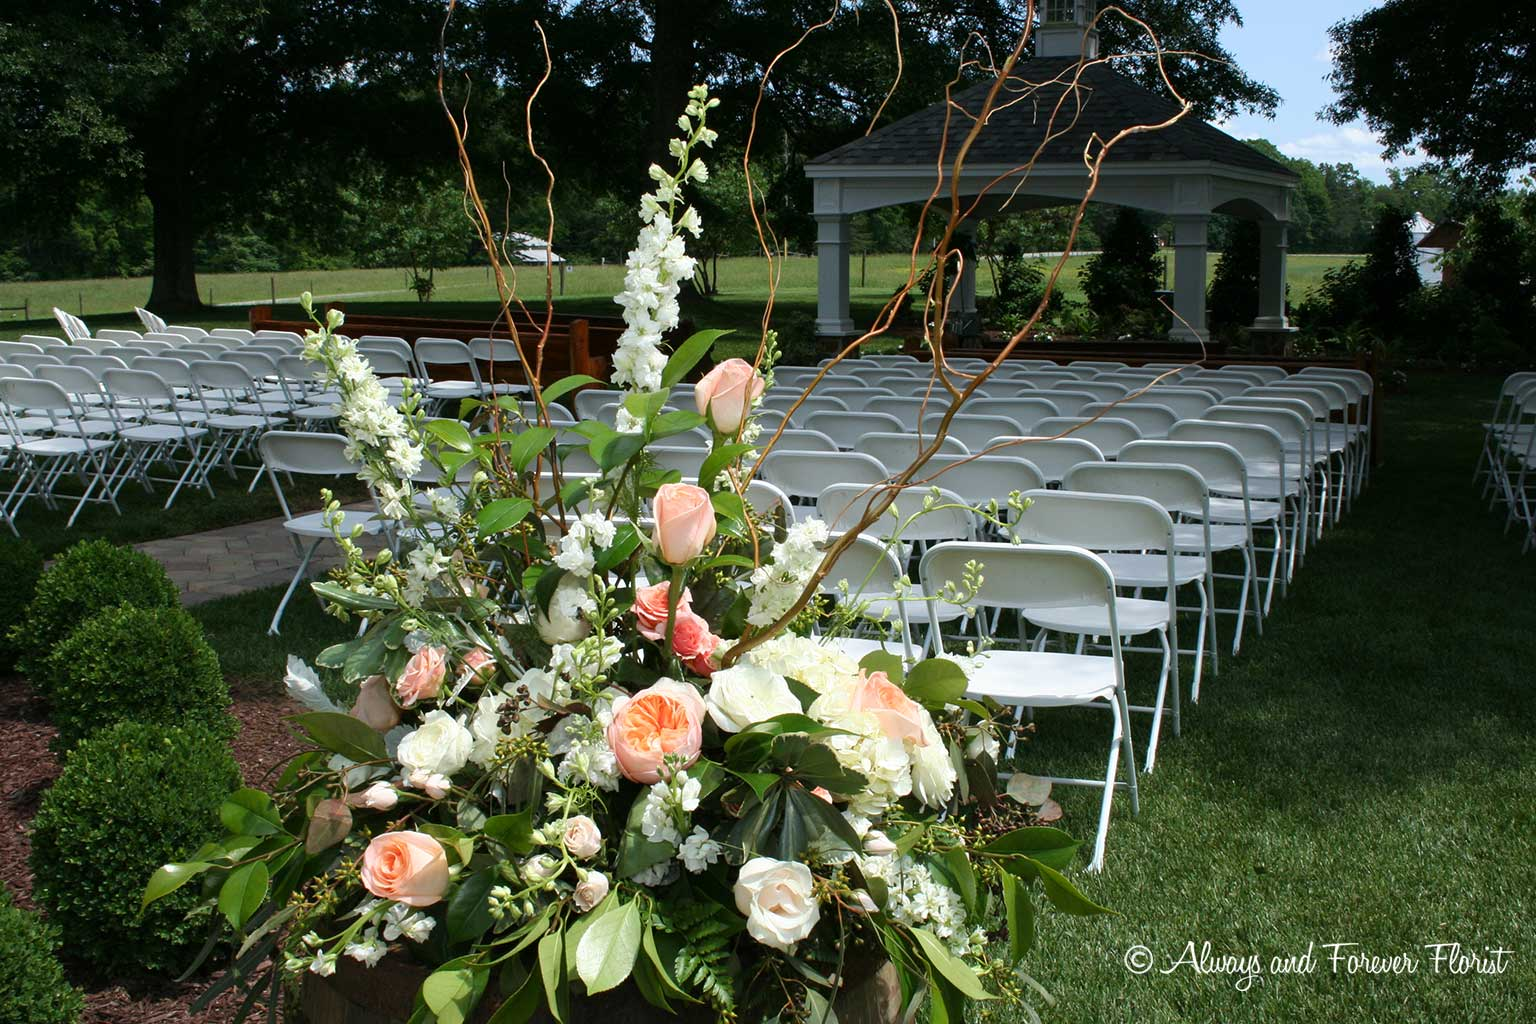 Outdoor wedding at oakhaven